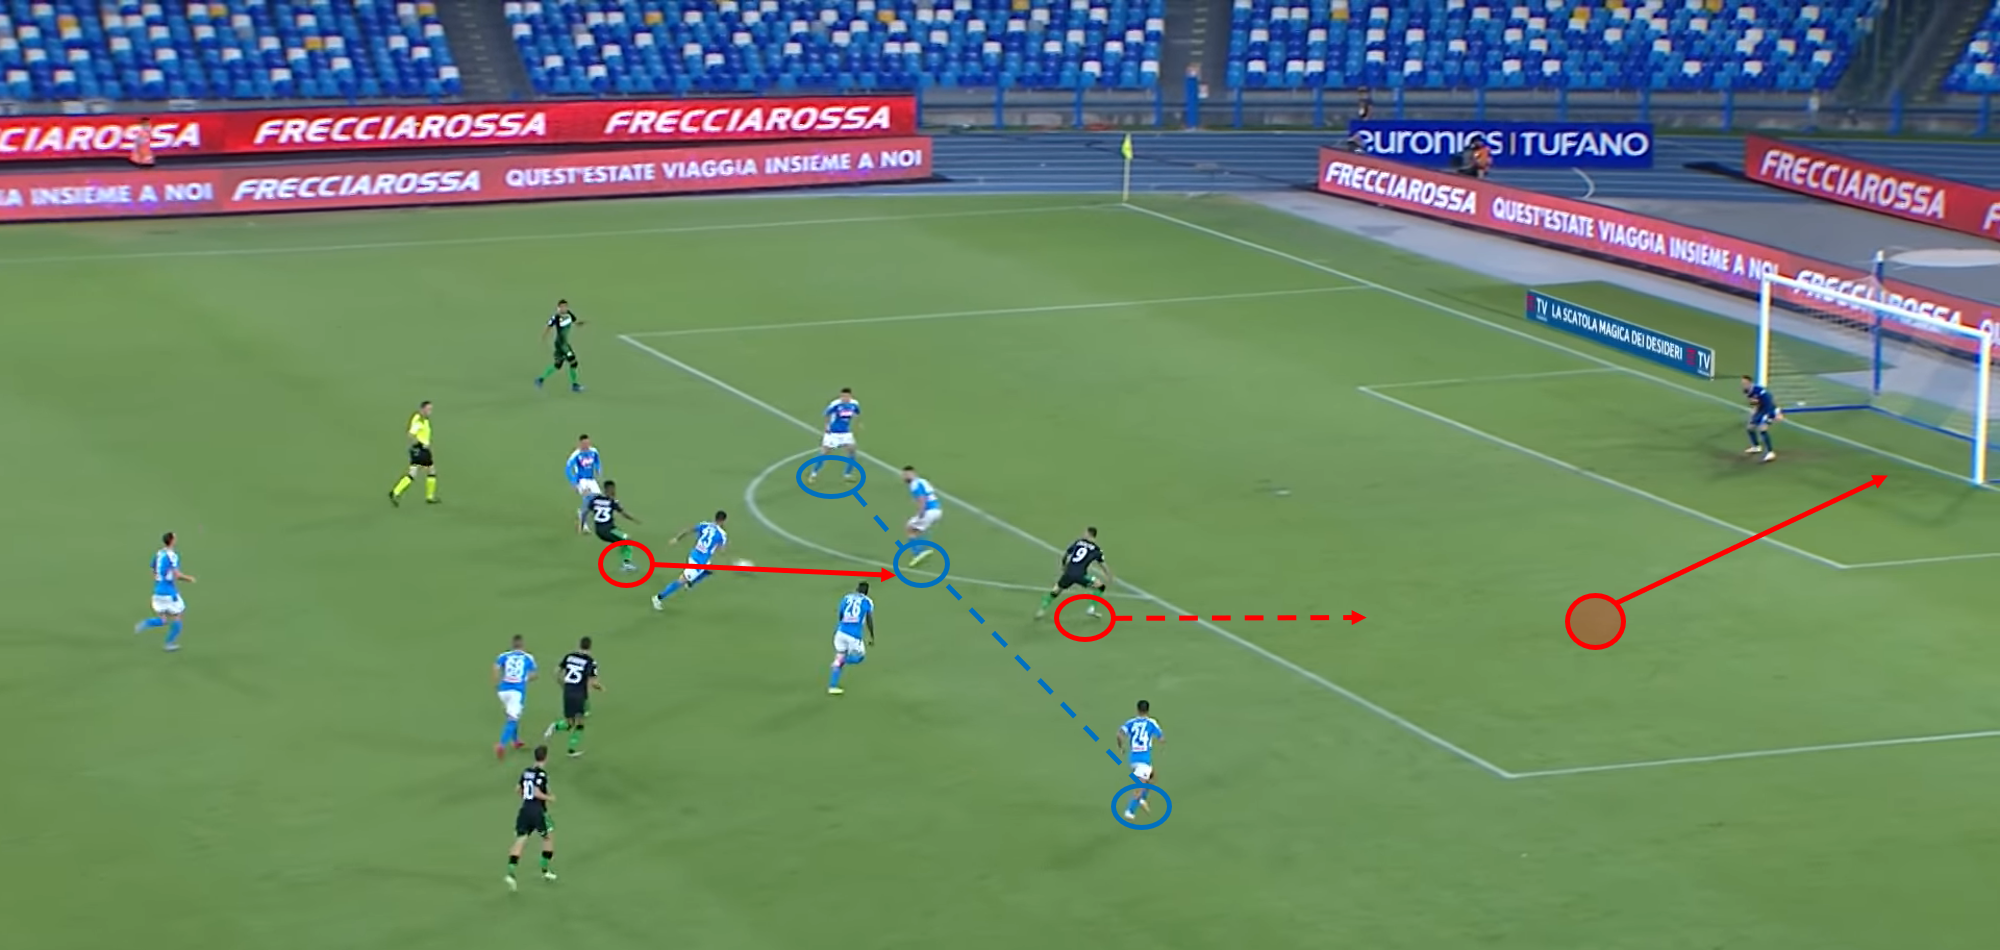 Serie A 2019/20: Napoli vs Sassuolo – tactical analysis - tactics